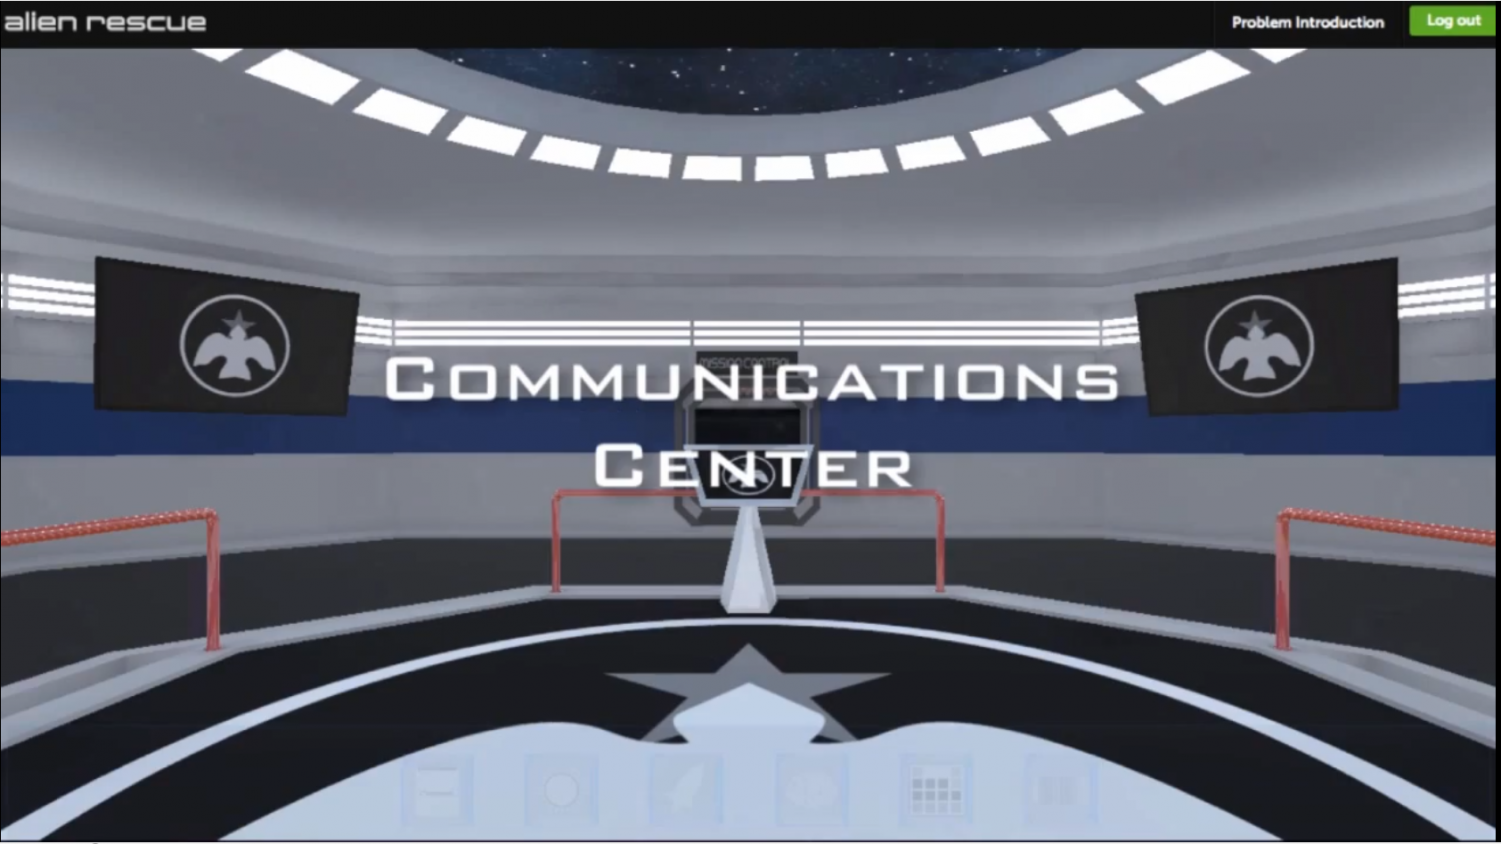 This+is+the+communications+center.+A+place+where+you+communicate+with+the+aliens+on+how+and+where+they+are+going+to+live.+This+is+where+you+first+get+your+mission+and+where+this+whole+game+begins.